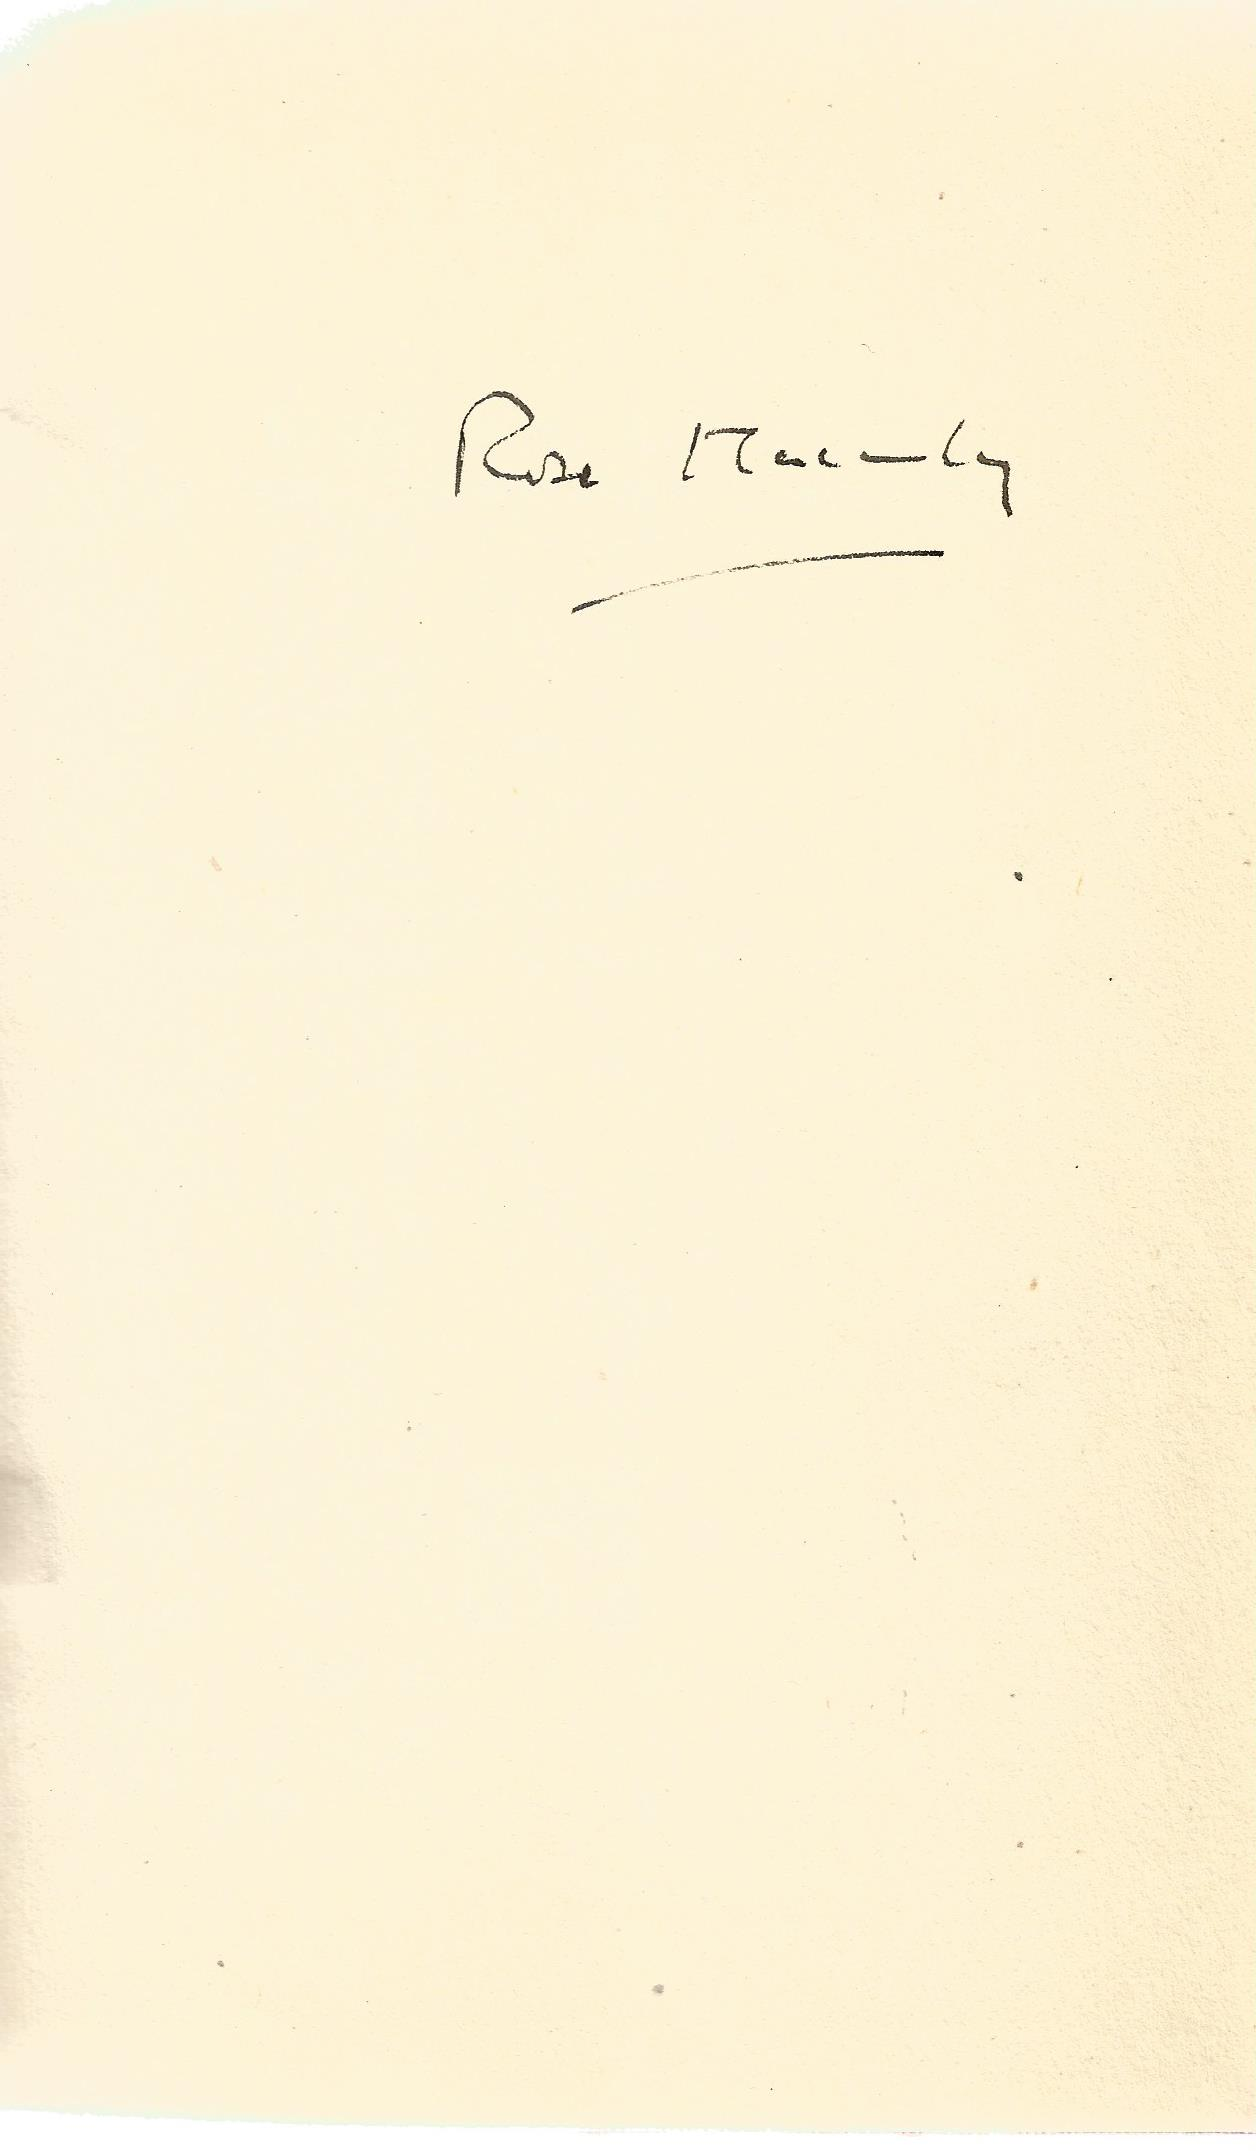 Signed Hardback Book Crewe Train by Rose Macaulay signed by the Author on the first page First - Image 3 of 3